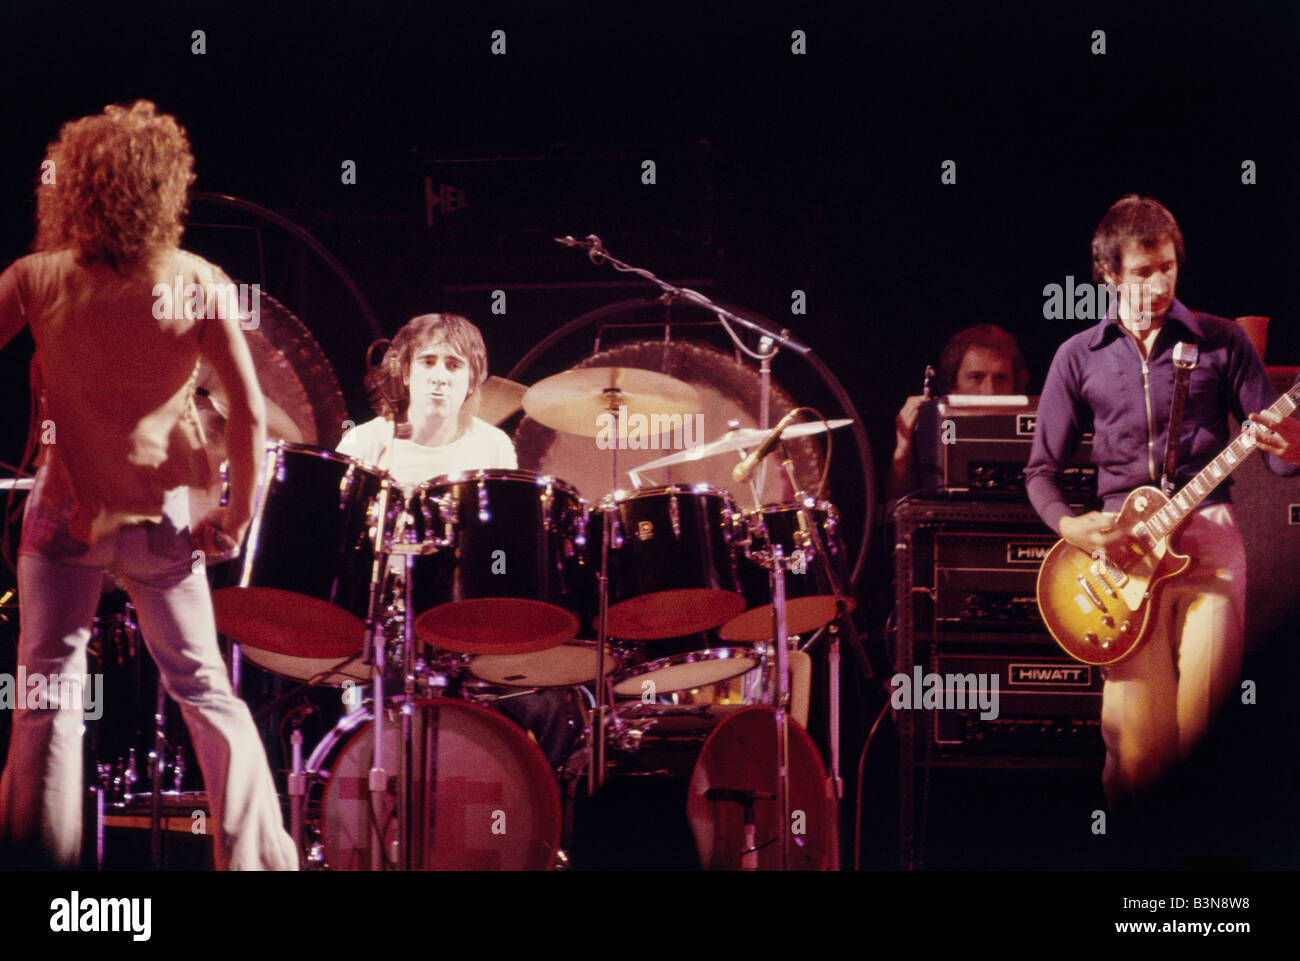 THE WHO UK rock group in 1978 - Stock Image